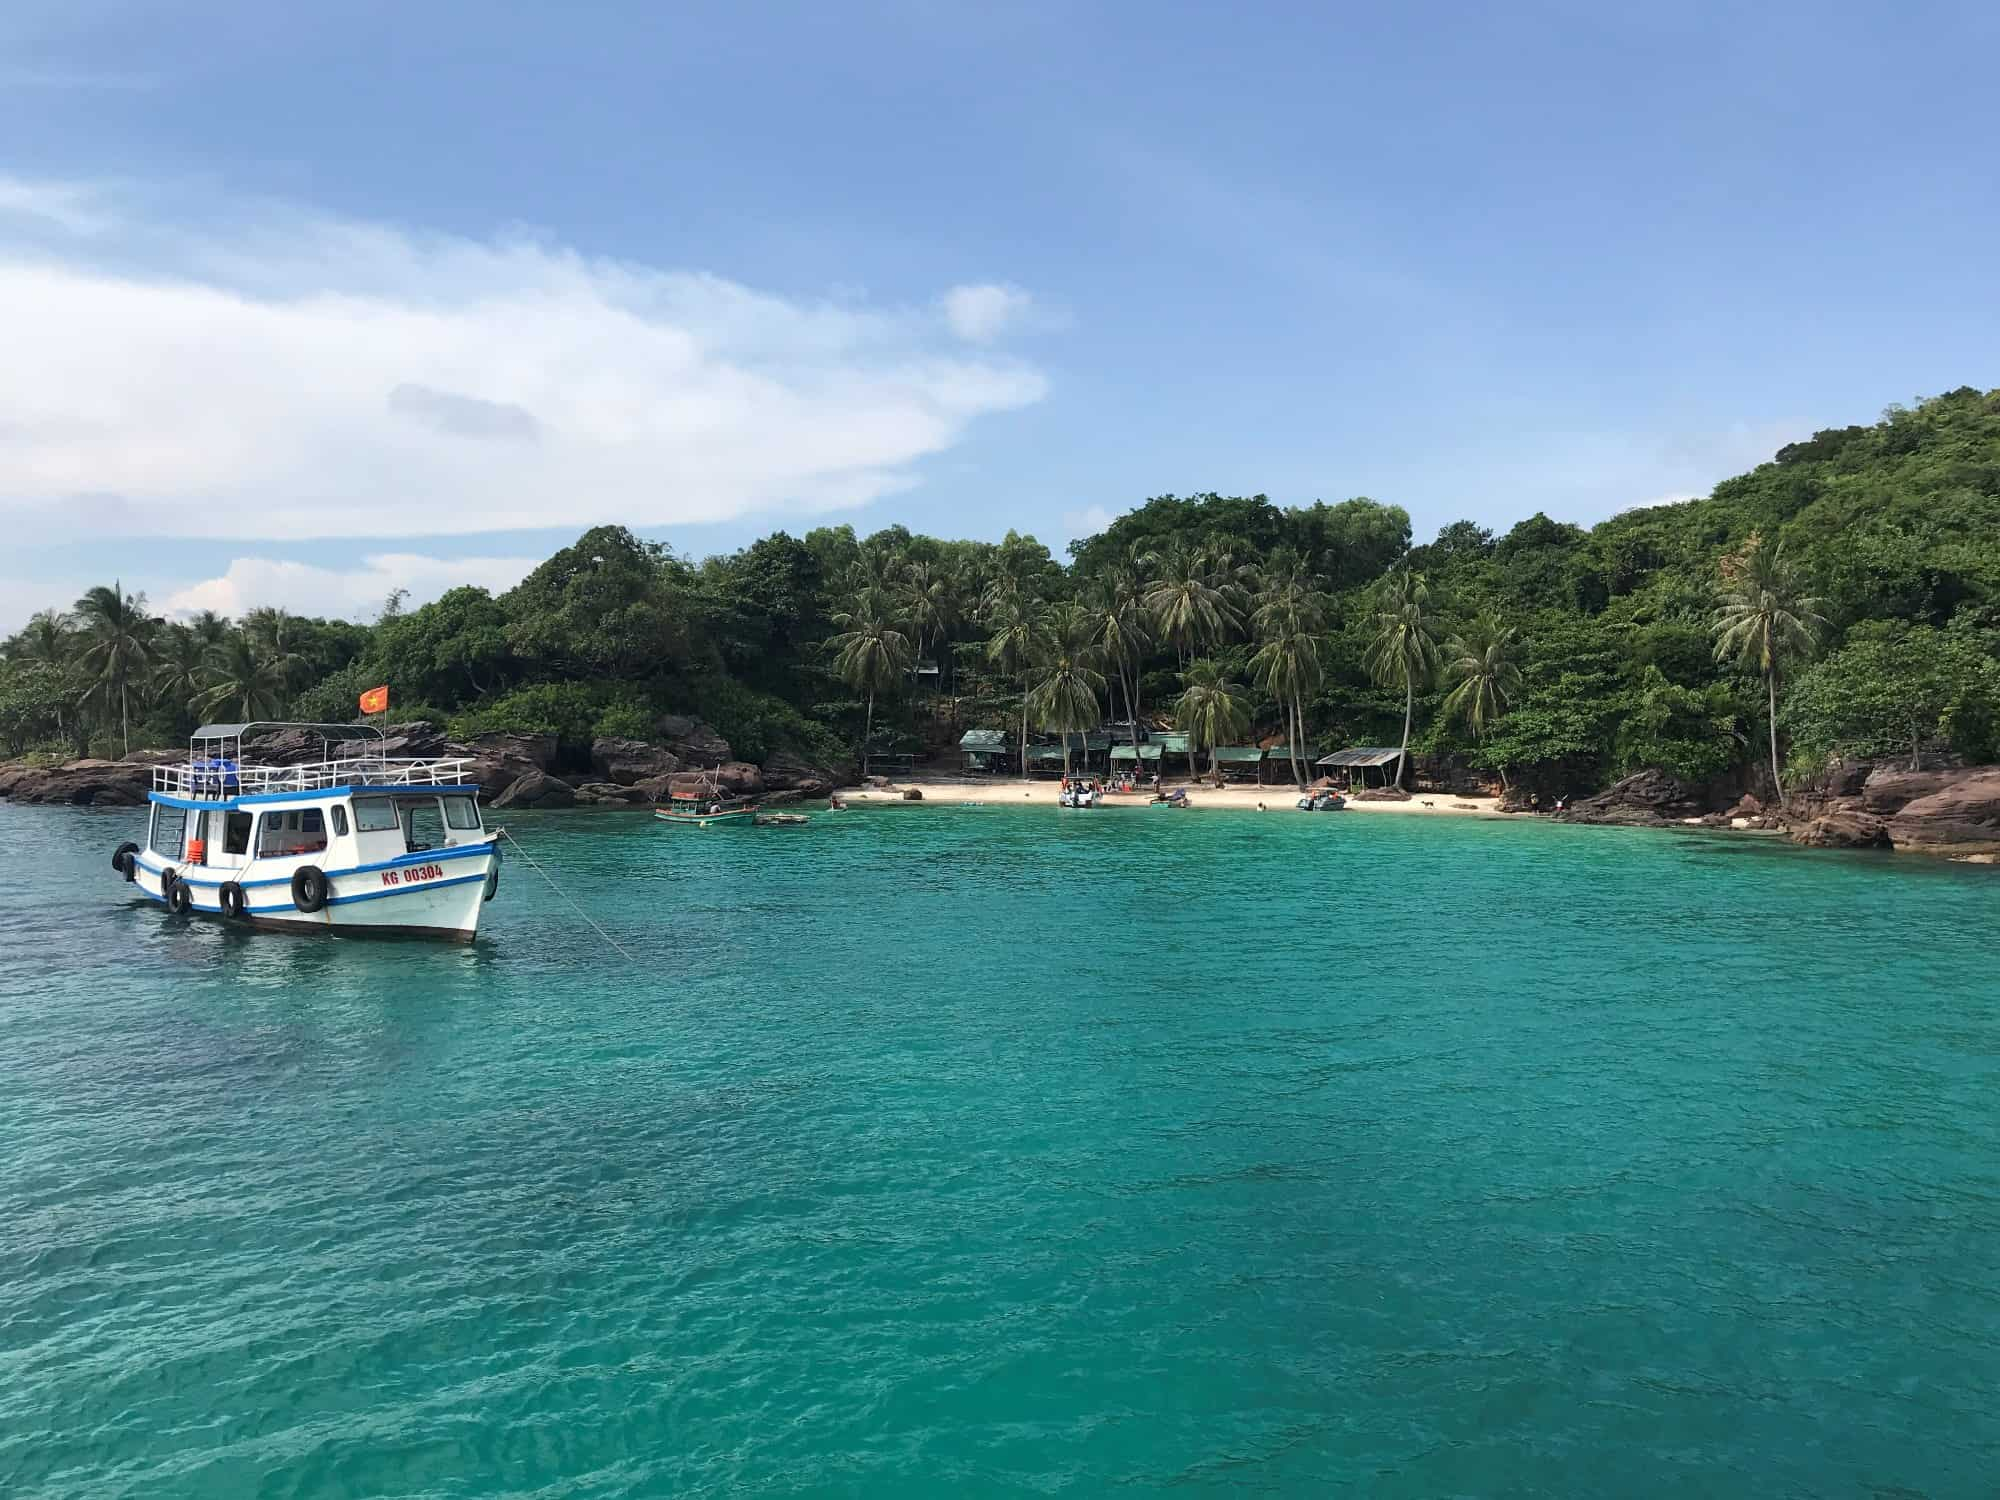 Phu Quoc Speedboat Tour to 4 Islands in the South